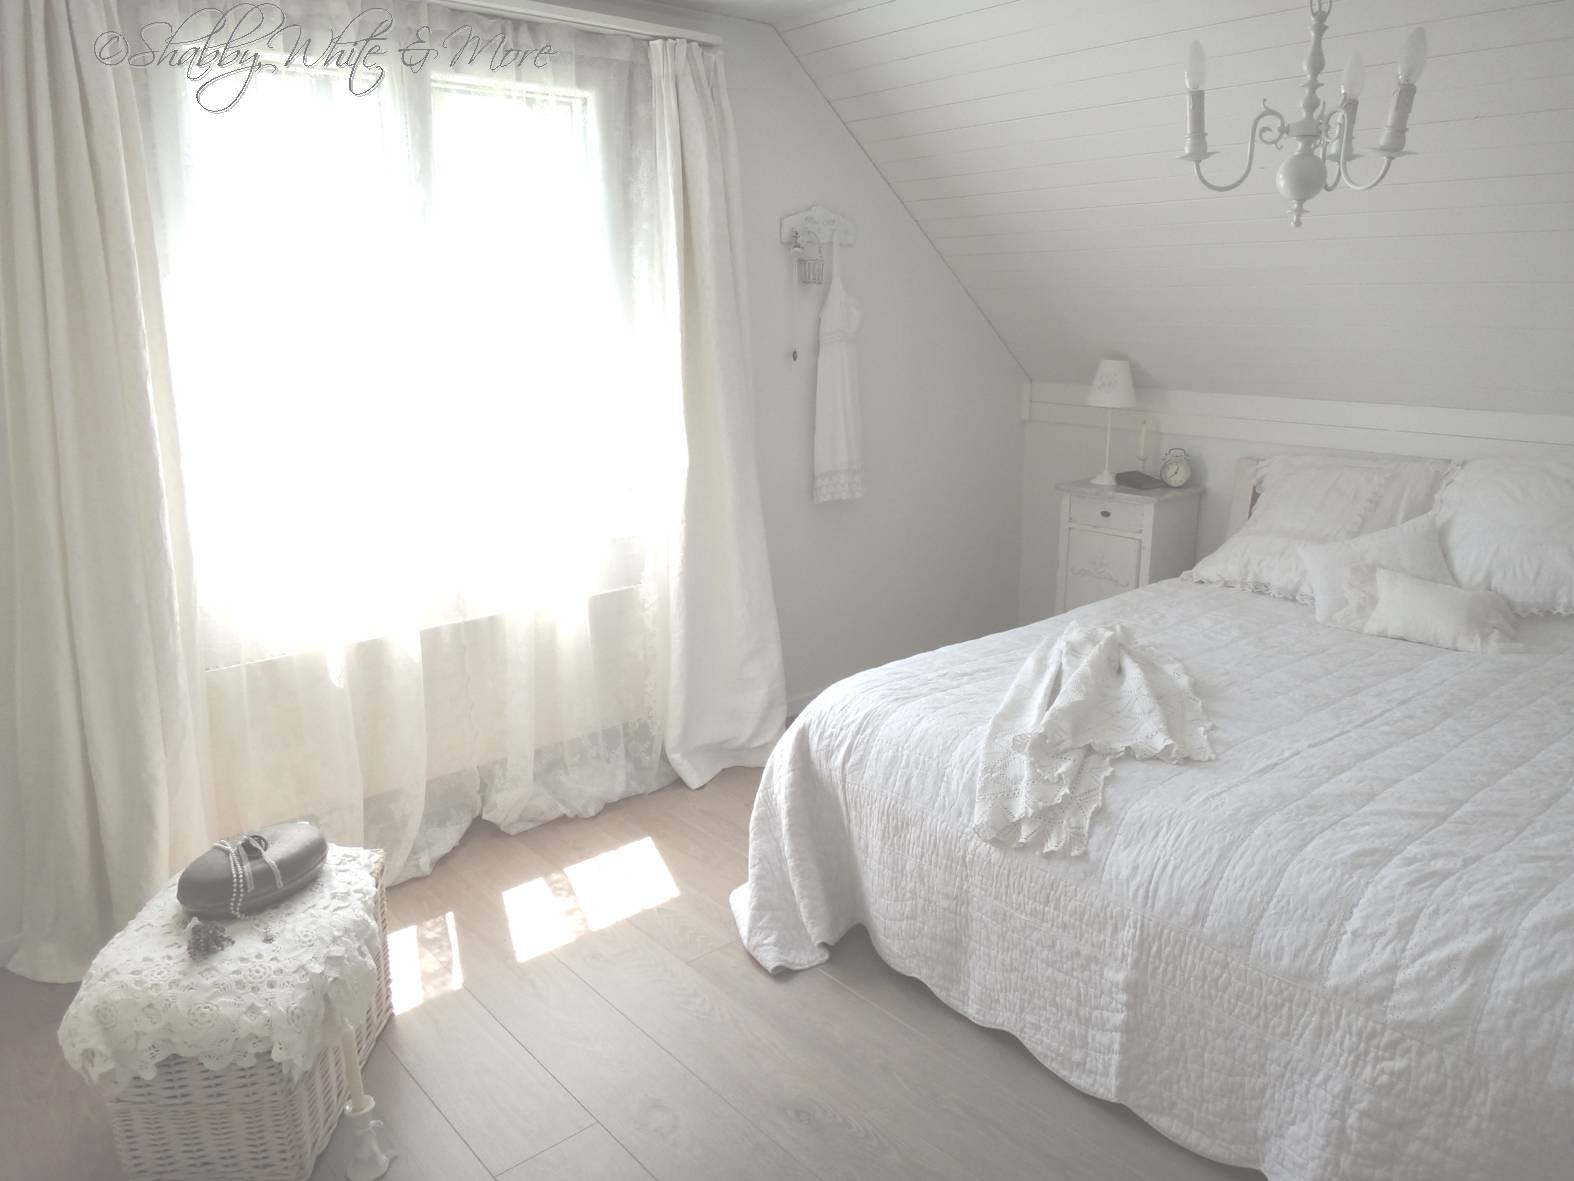 shabby, white and more: neues schlafzimmer, Schlafzimmer entwurf